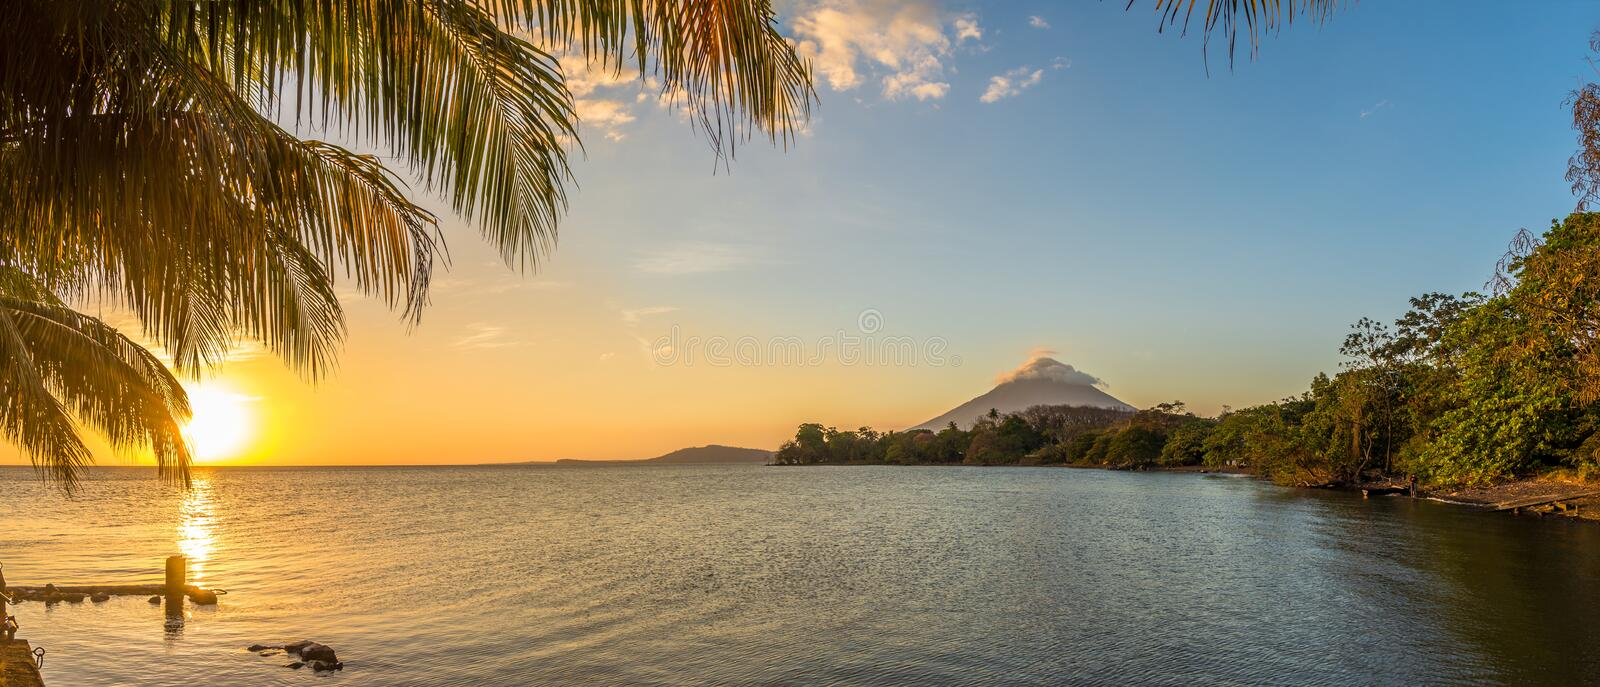 Panoramic view at the sunset with Conception Volcano at the Nicaragua lake in Ometepe Island - Nicaragua royalty free stock photos